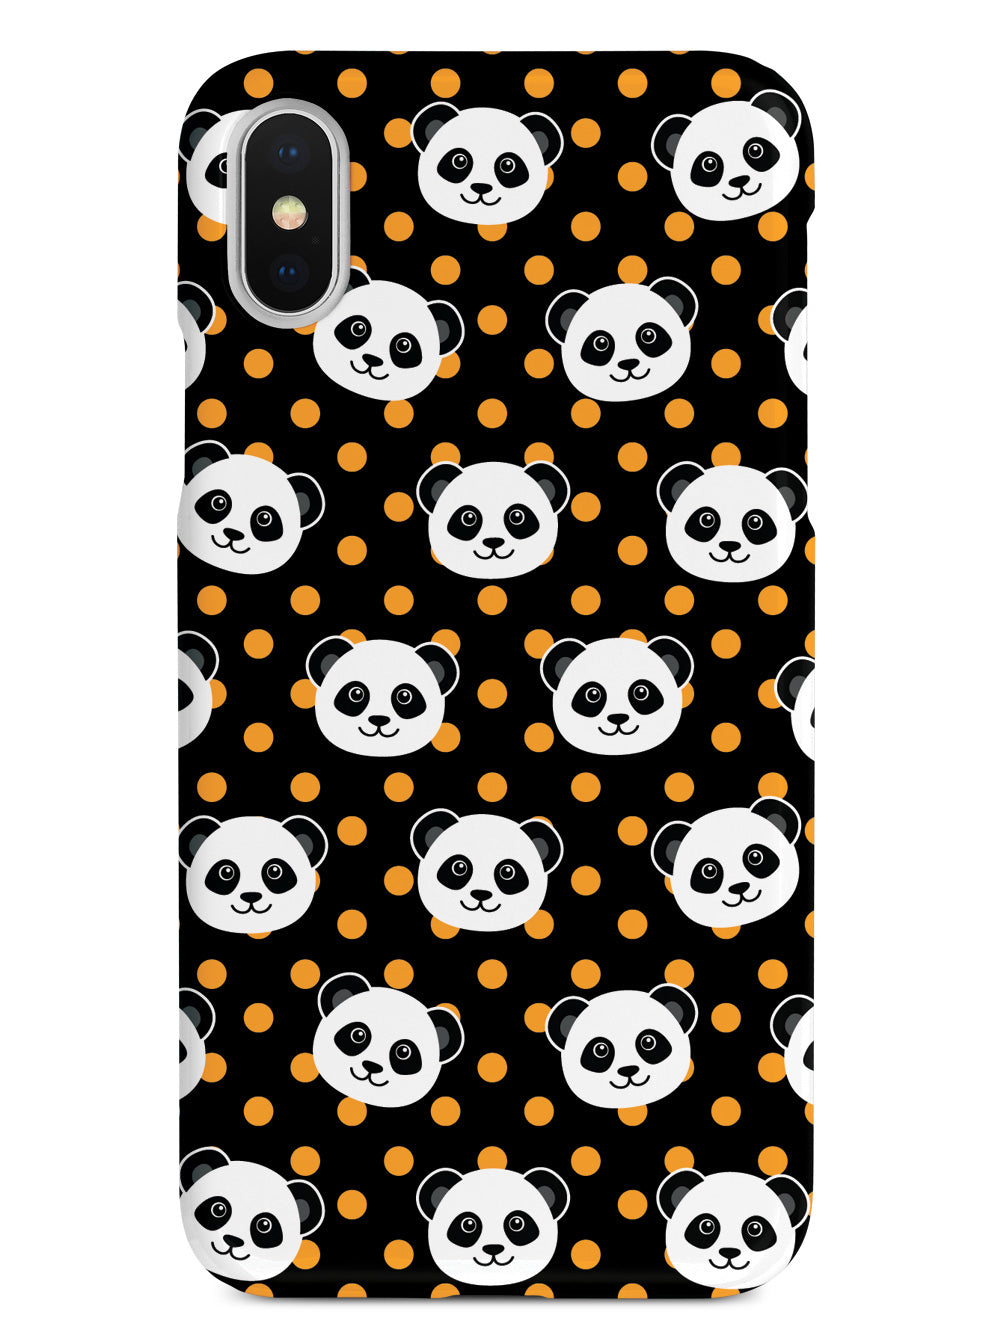 Cute Panda Pattern - Orange Polka Dots - Black Case